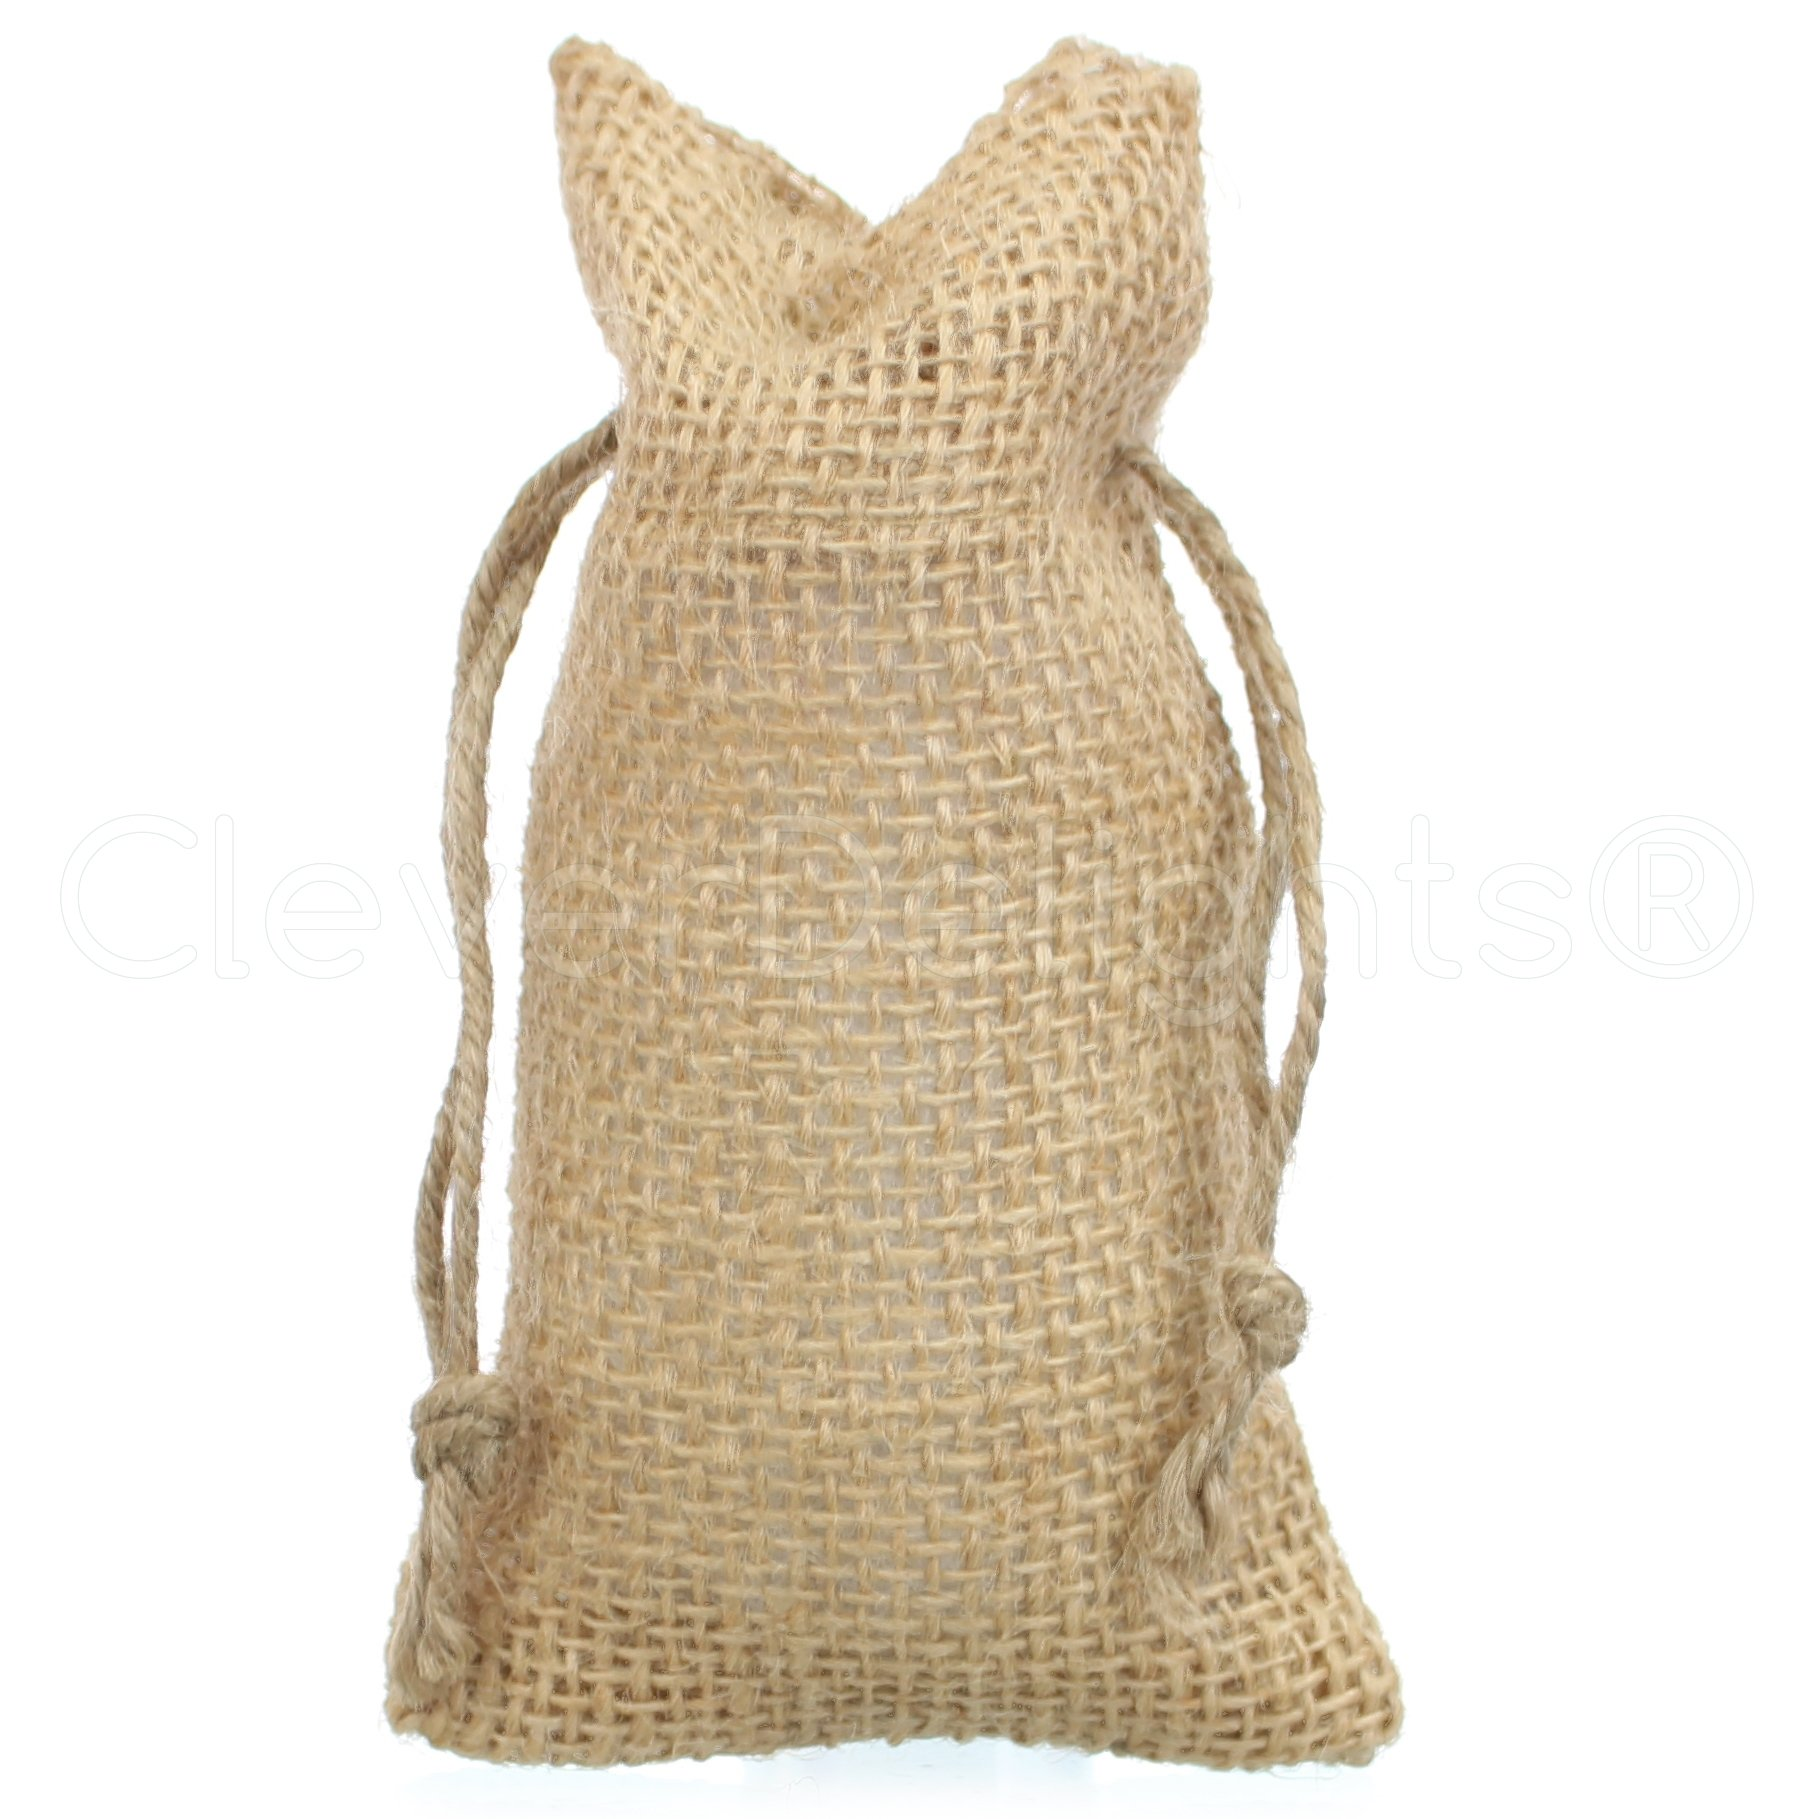 CleverDelights 3'' x 5'' Burlap Bags with Natural Jute Drawstring - 100 Pack - Small Burlap Pouch Sack Favor Bag for Showers Weddings Parties and Receptions - 3x5 inch